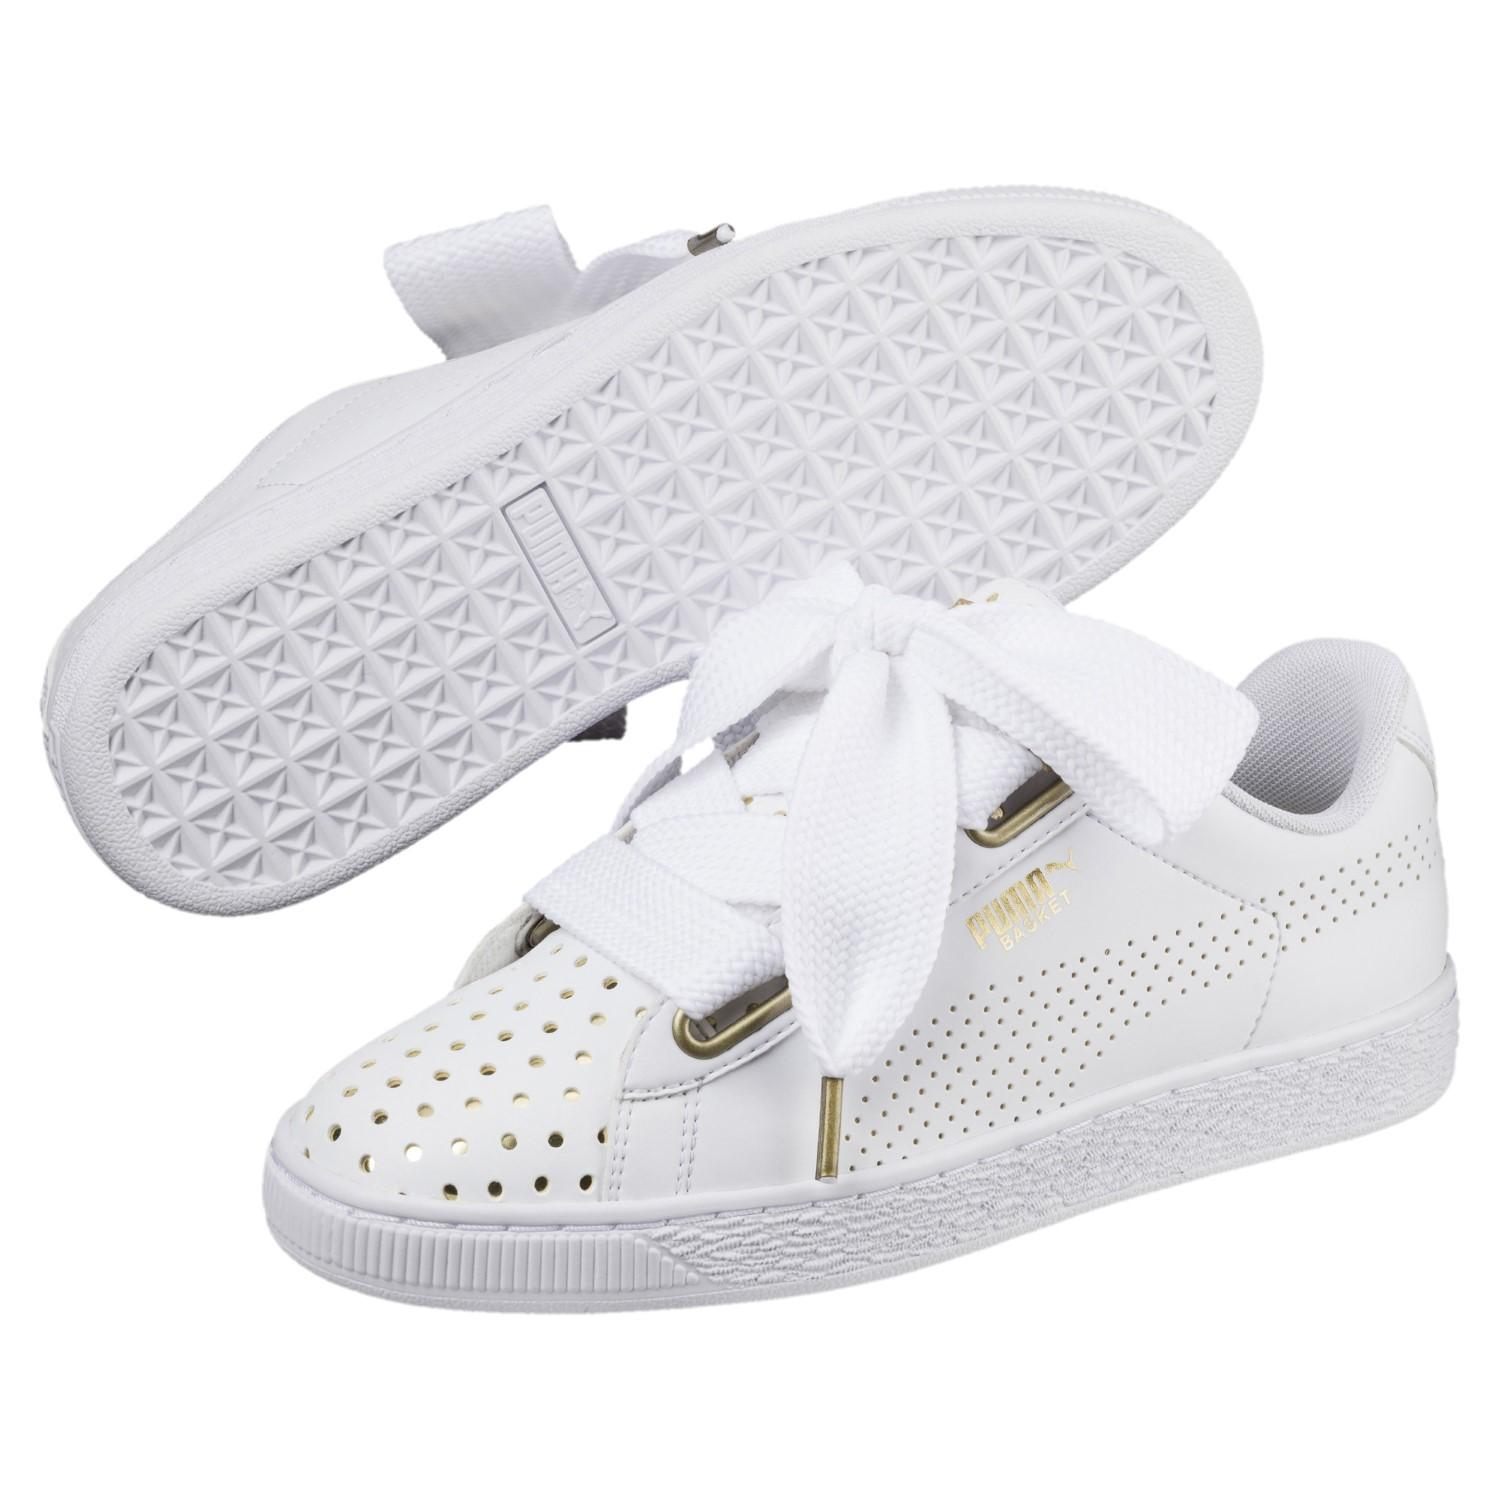 c63661e0acf5 Lyst - PUMA Basket Heart Ath Lux Sneakers in White